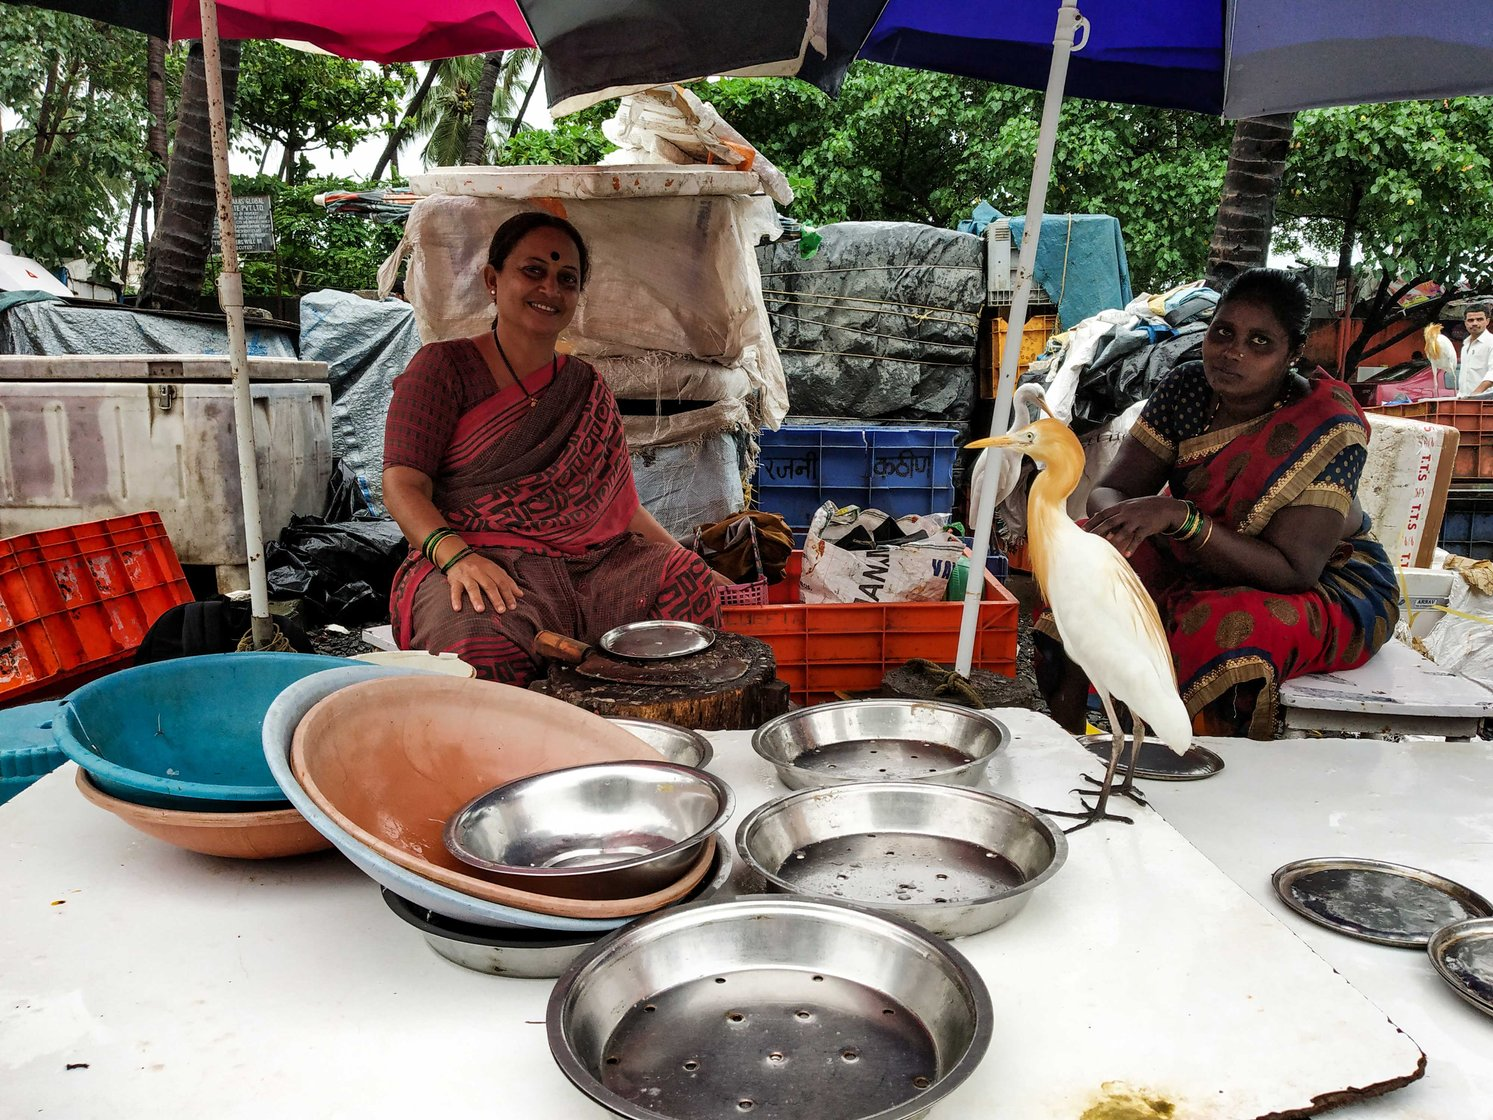 Harsha Tapke (left), who has been selling fish for 30 years, speaks of the changes she has seen. With her is helper Yashoda Dhangar, from Kurnool district of Andhra Pradesh